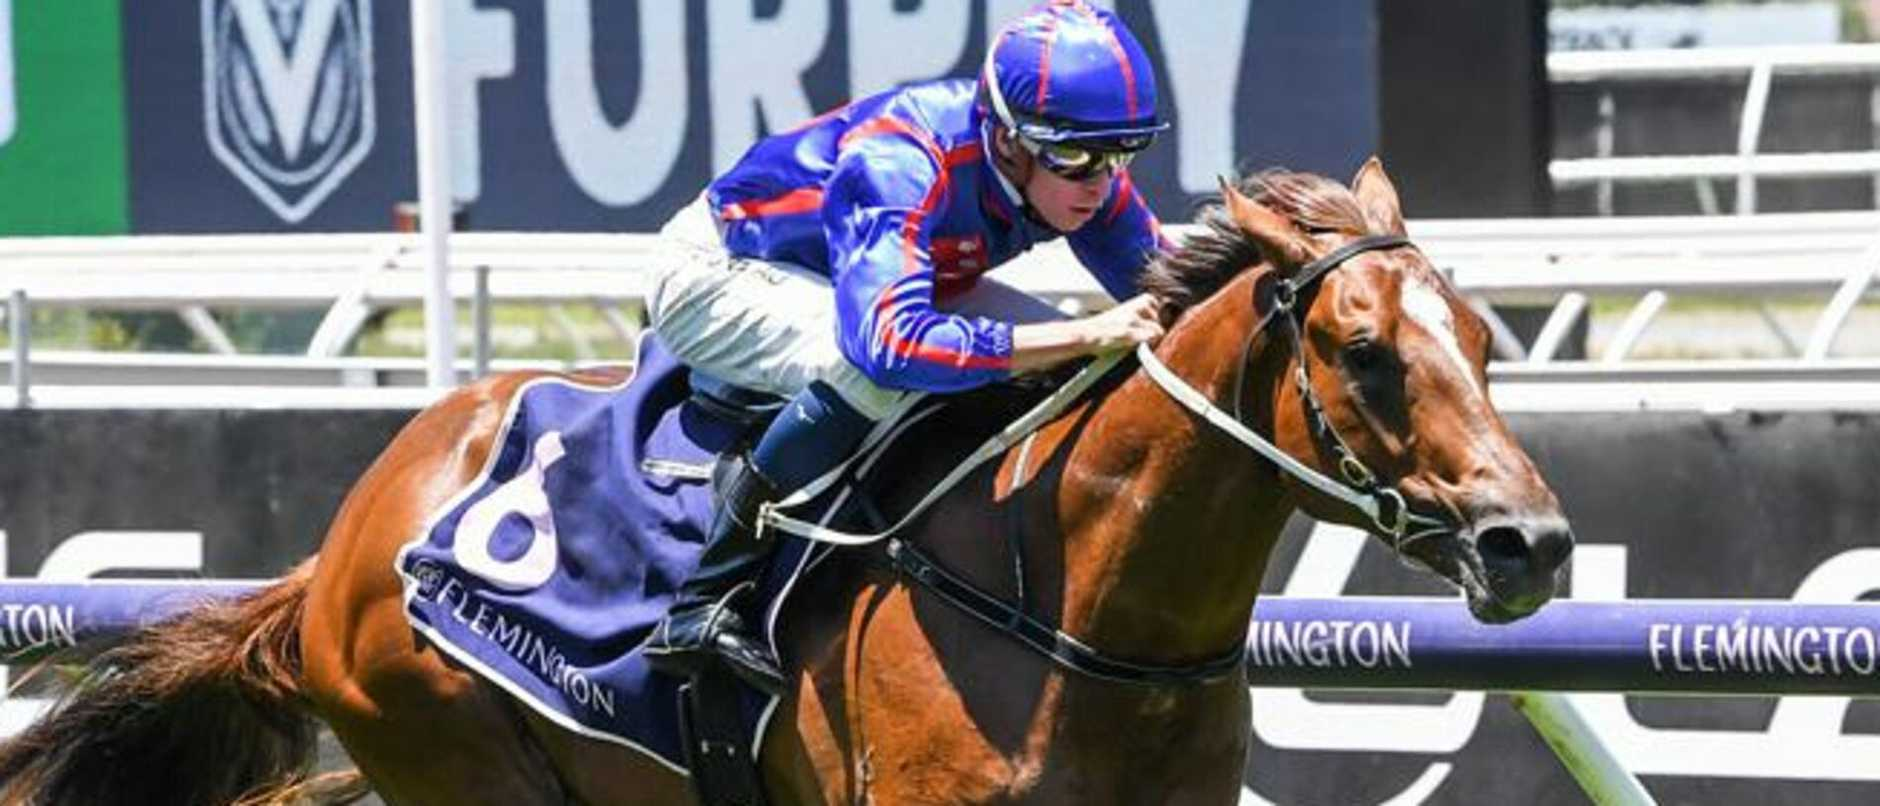 Newgate Farm boss Henry Field hopes to unearth another potential stallion prospect as he applies his strategy to stay at the forefront of thoroughbred breeding.